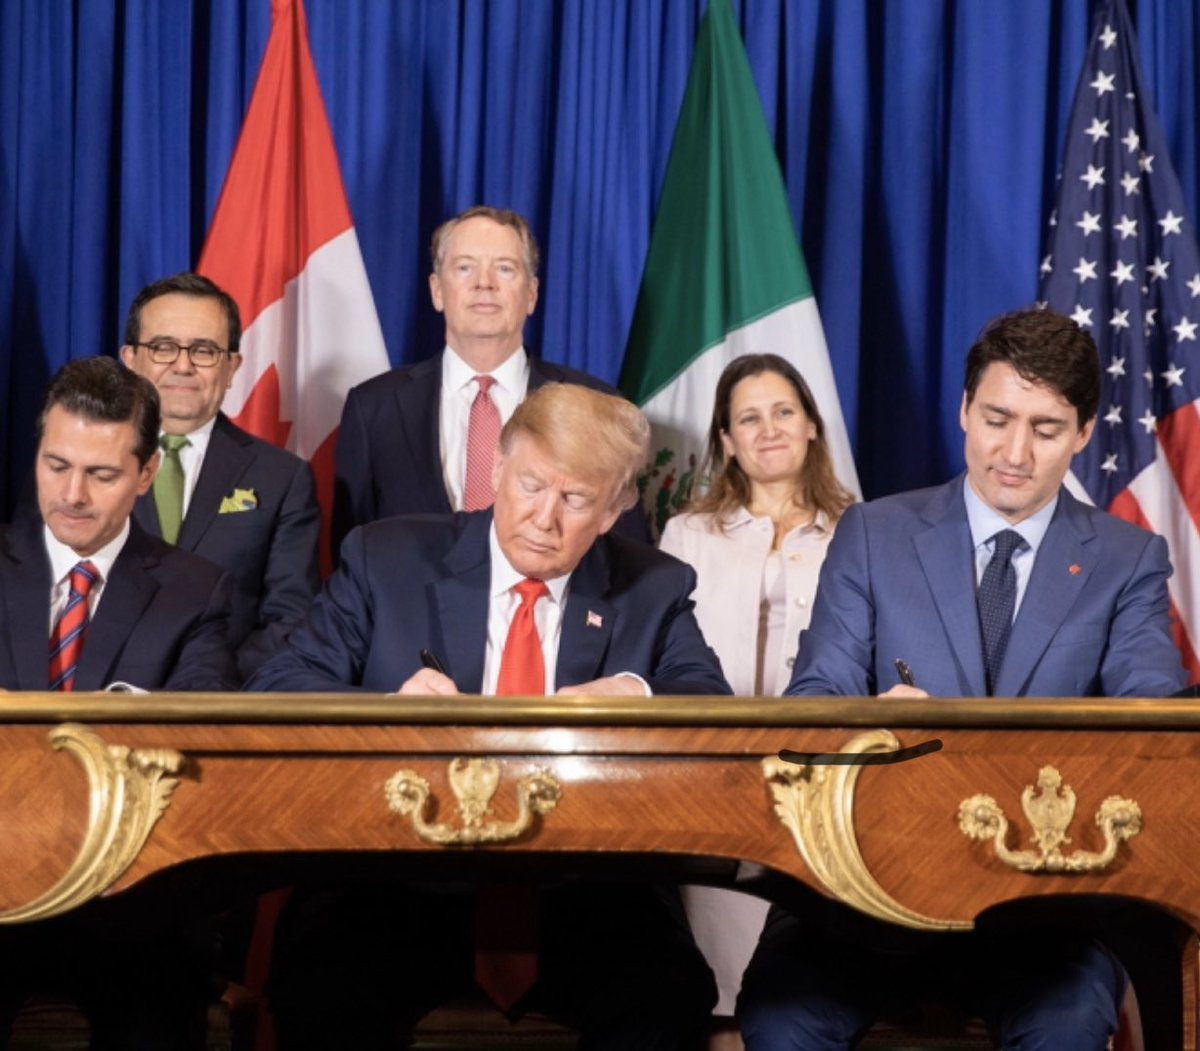 The Senate just passed @realDonaldTrump's historic #USMCA trade agreement, replacing the job killing NAFTA.  Next stop → the President's desk.  This is a MAJOR win for American workers, farmers and ranchers!  Once Again, Promises Made, Promises Kept! 🇺🇸